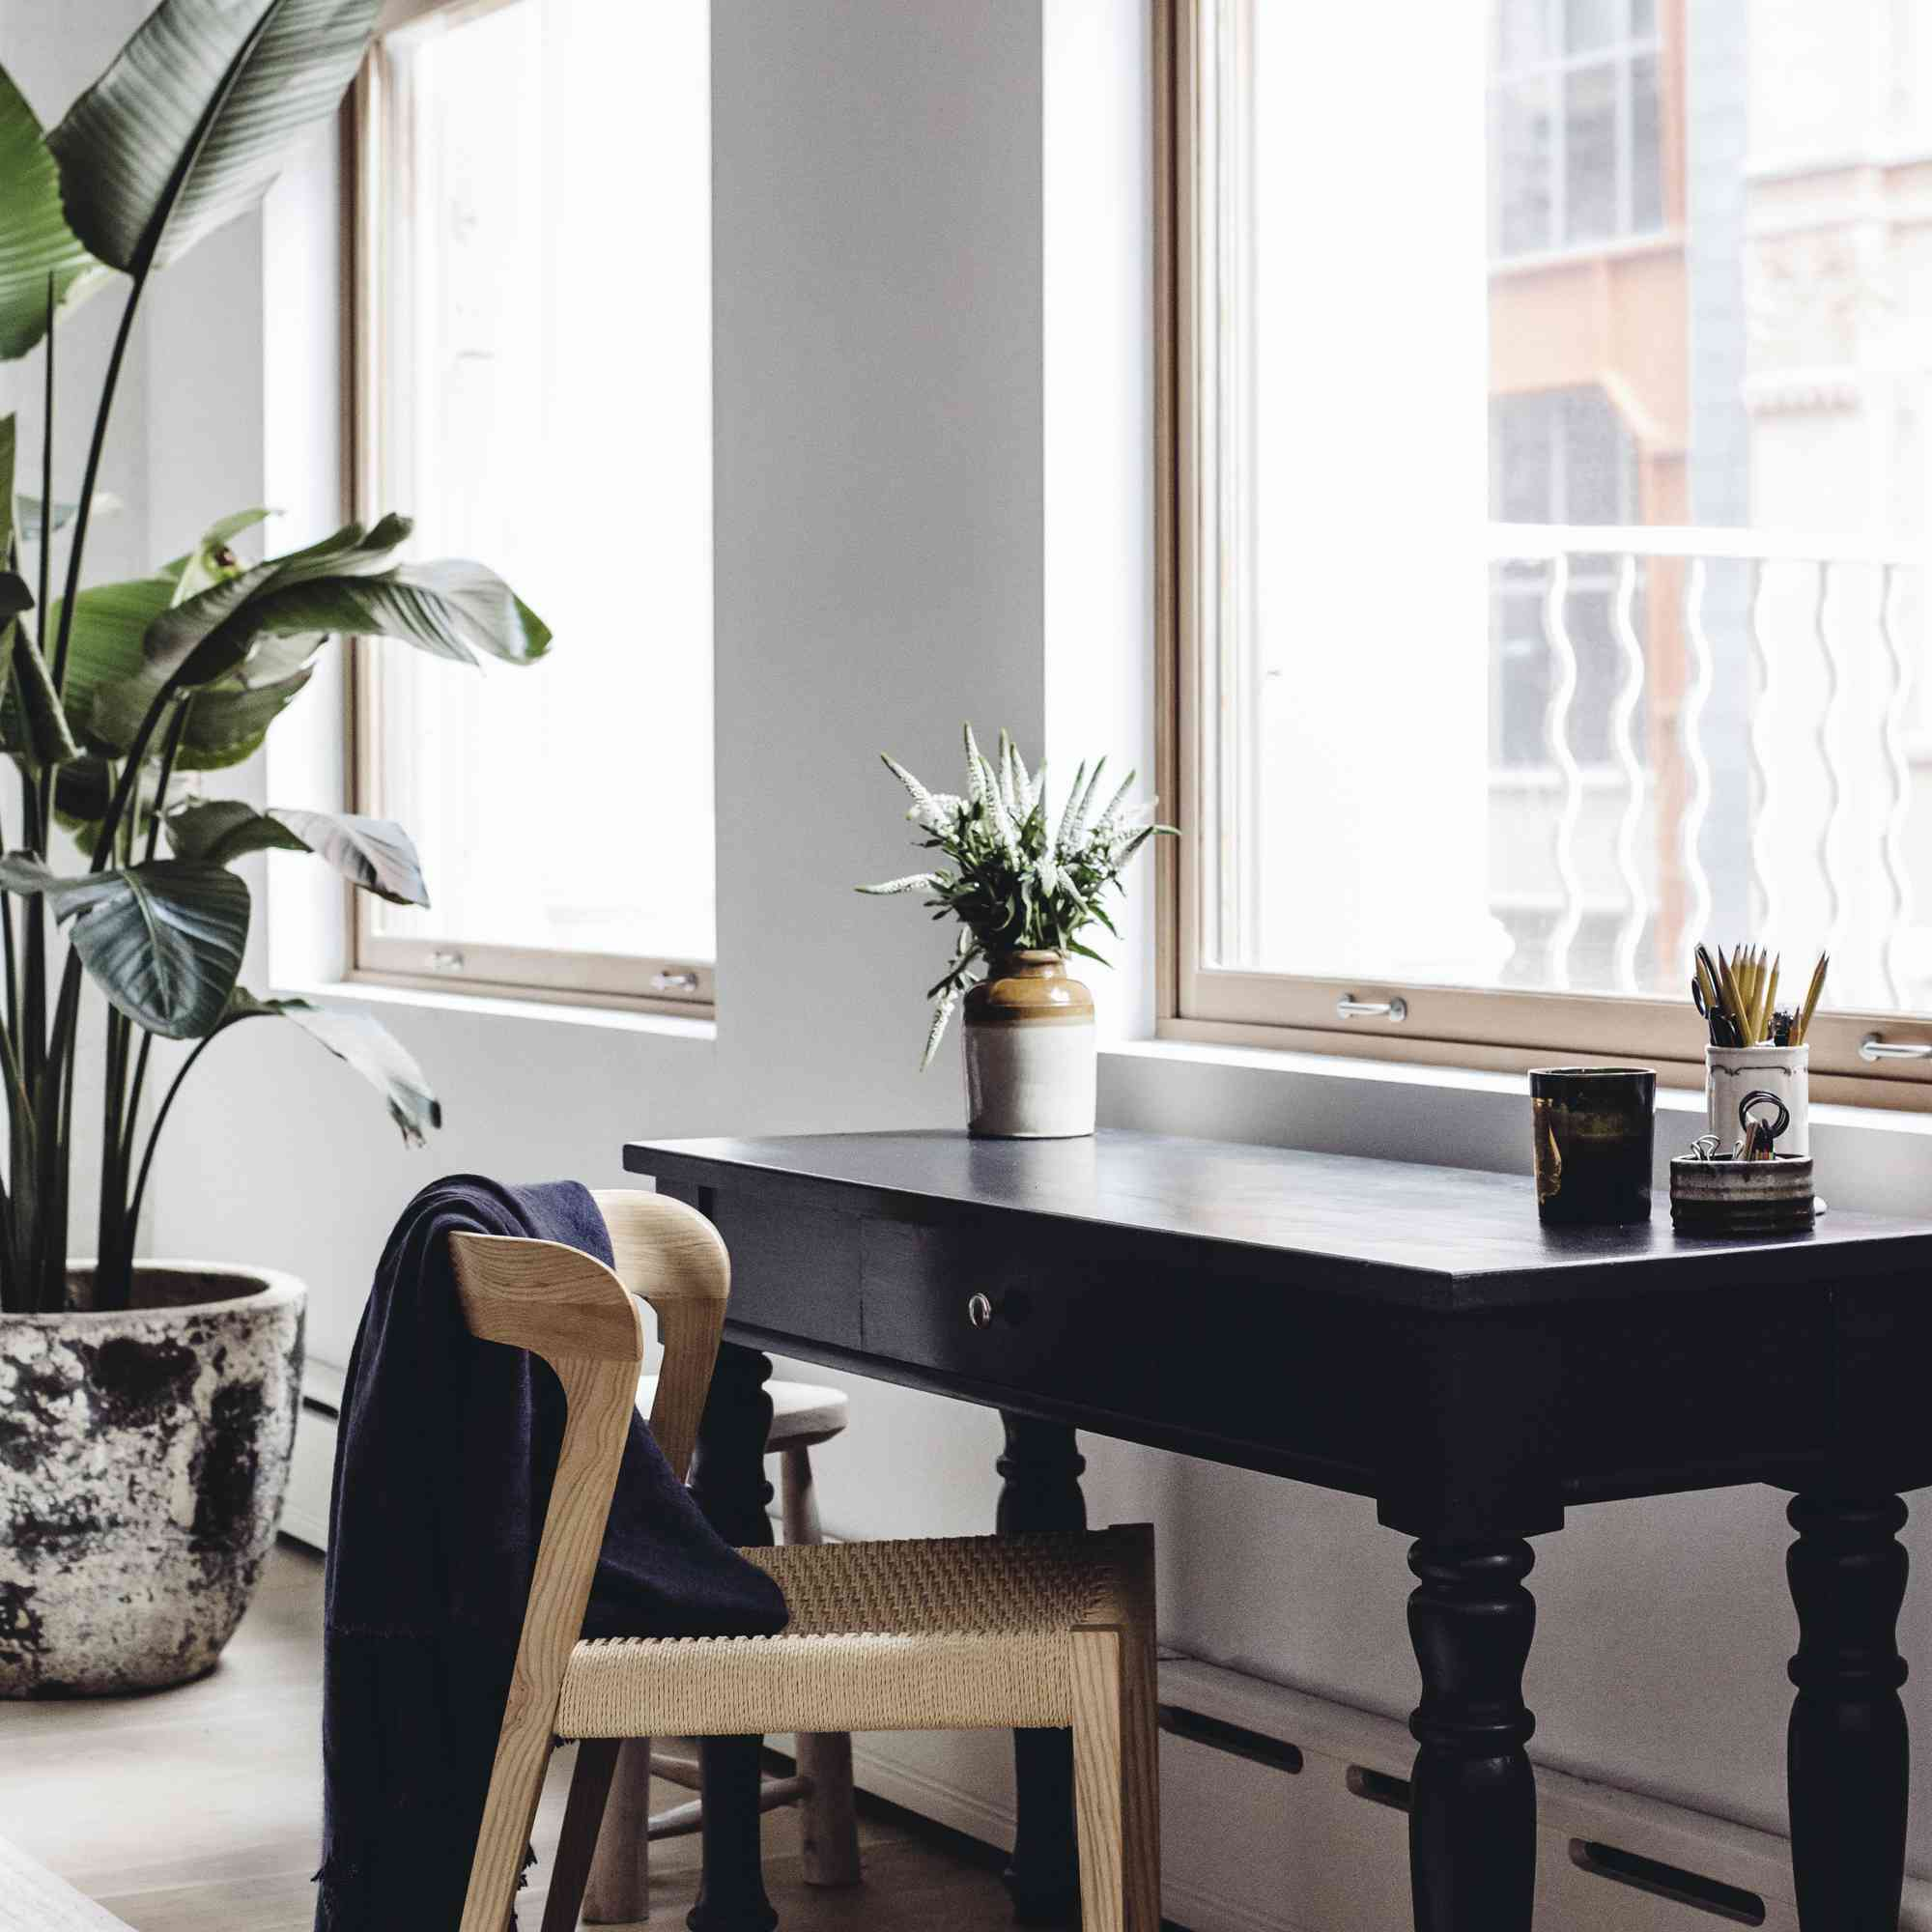 Painted black desk in an apartment